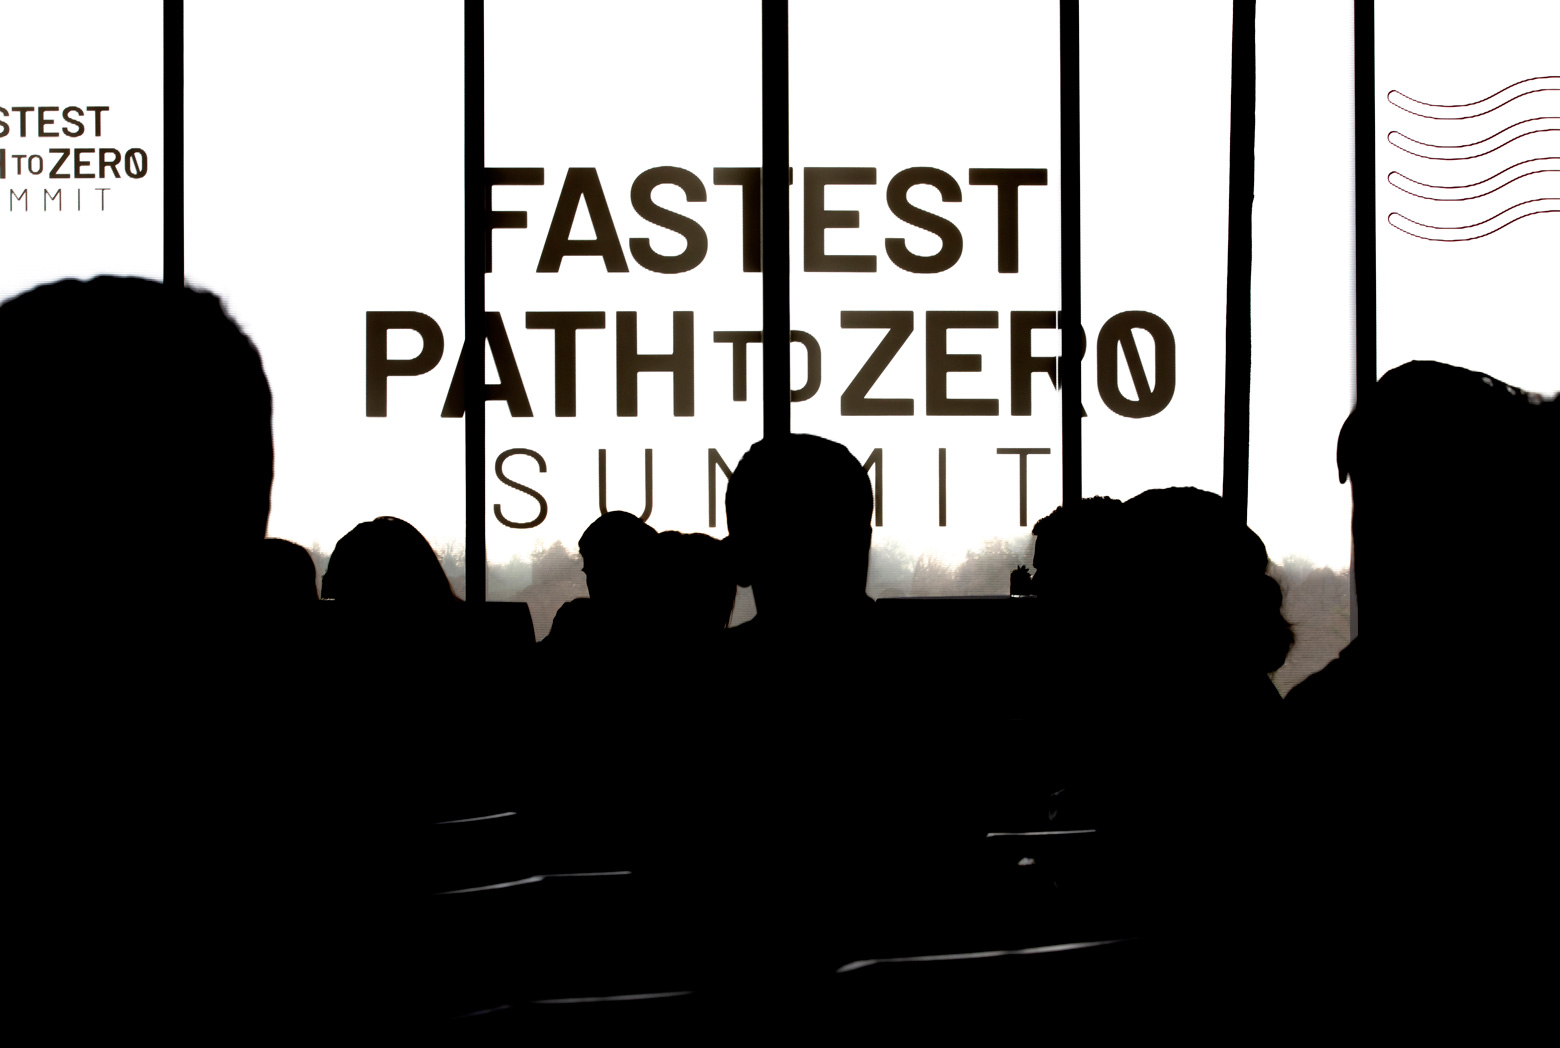 Silhouettes of people against a light background reading Fastest Path to Zero Summit